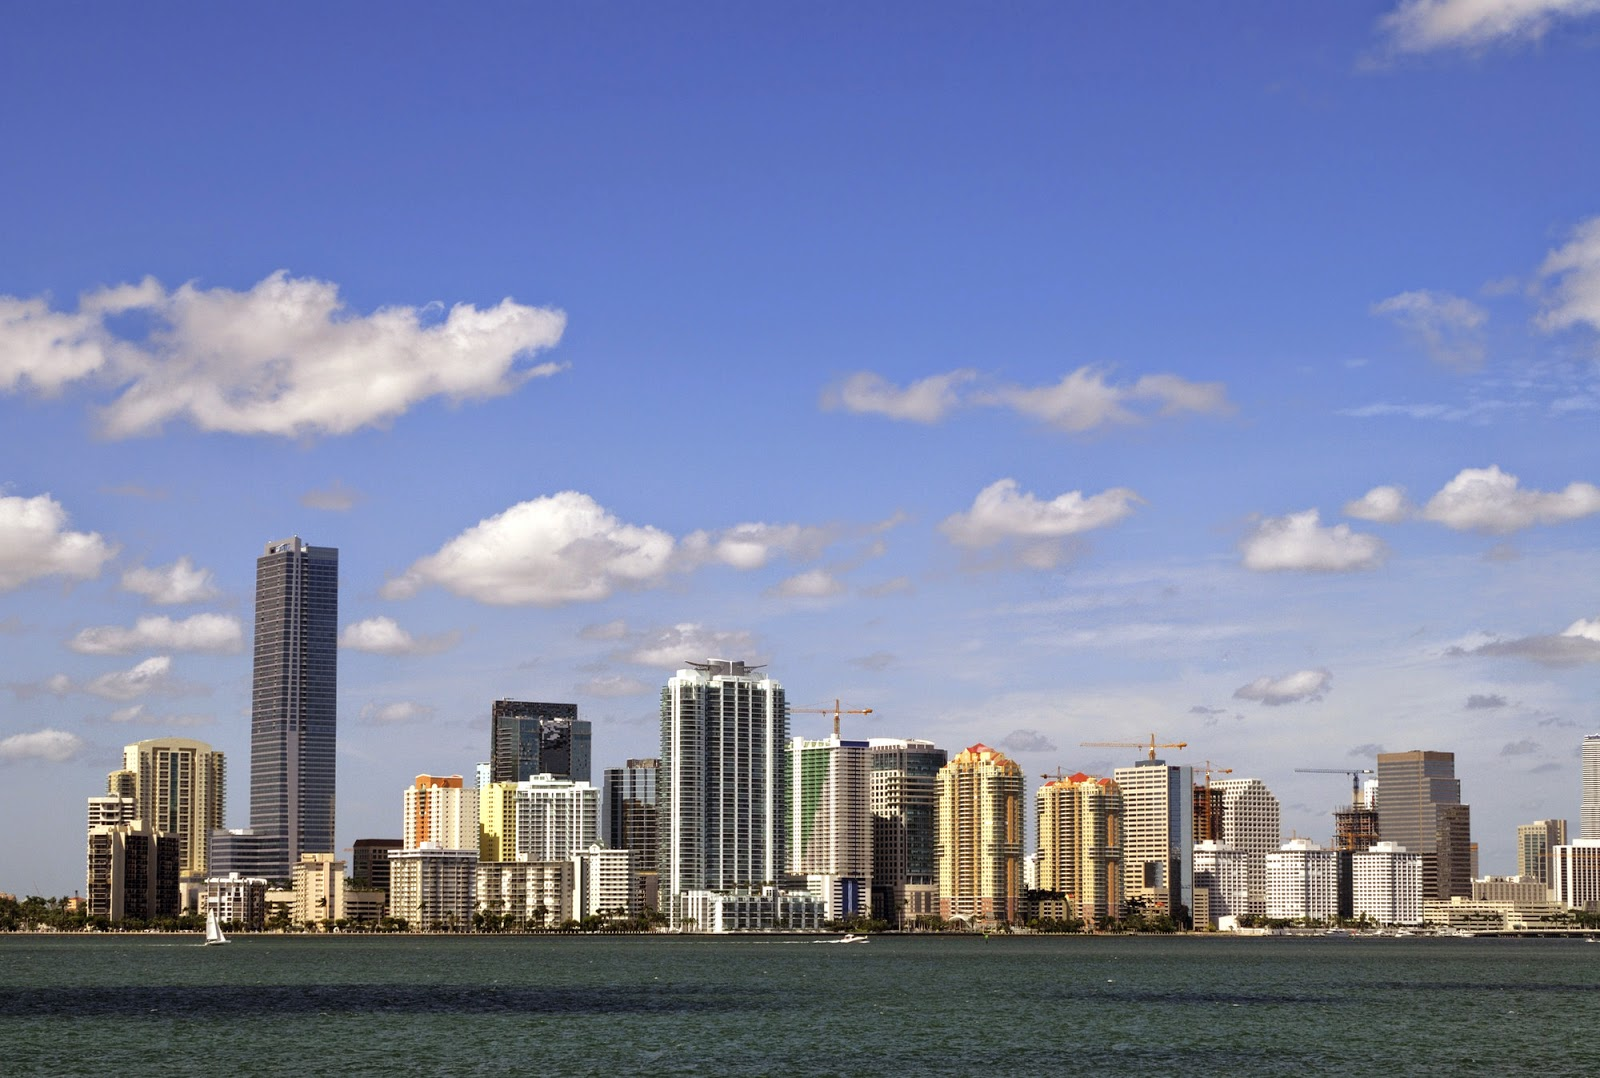 View the great skyline of Miami